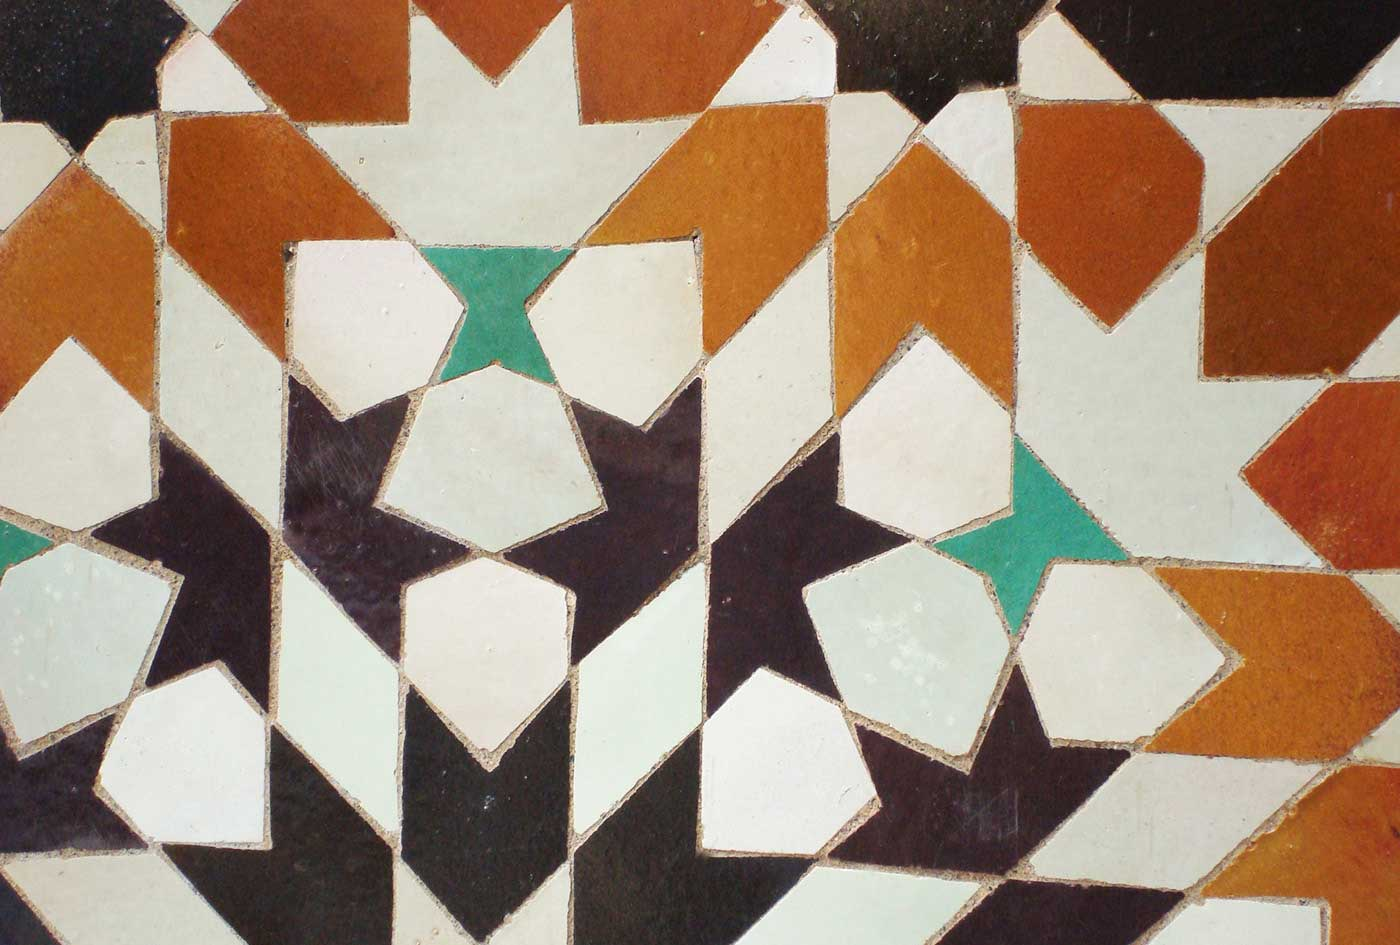 detail of an Islamic geometric composition in ceramic zillij tiles